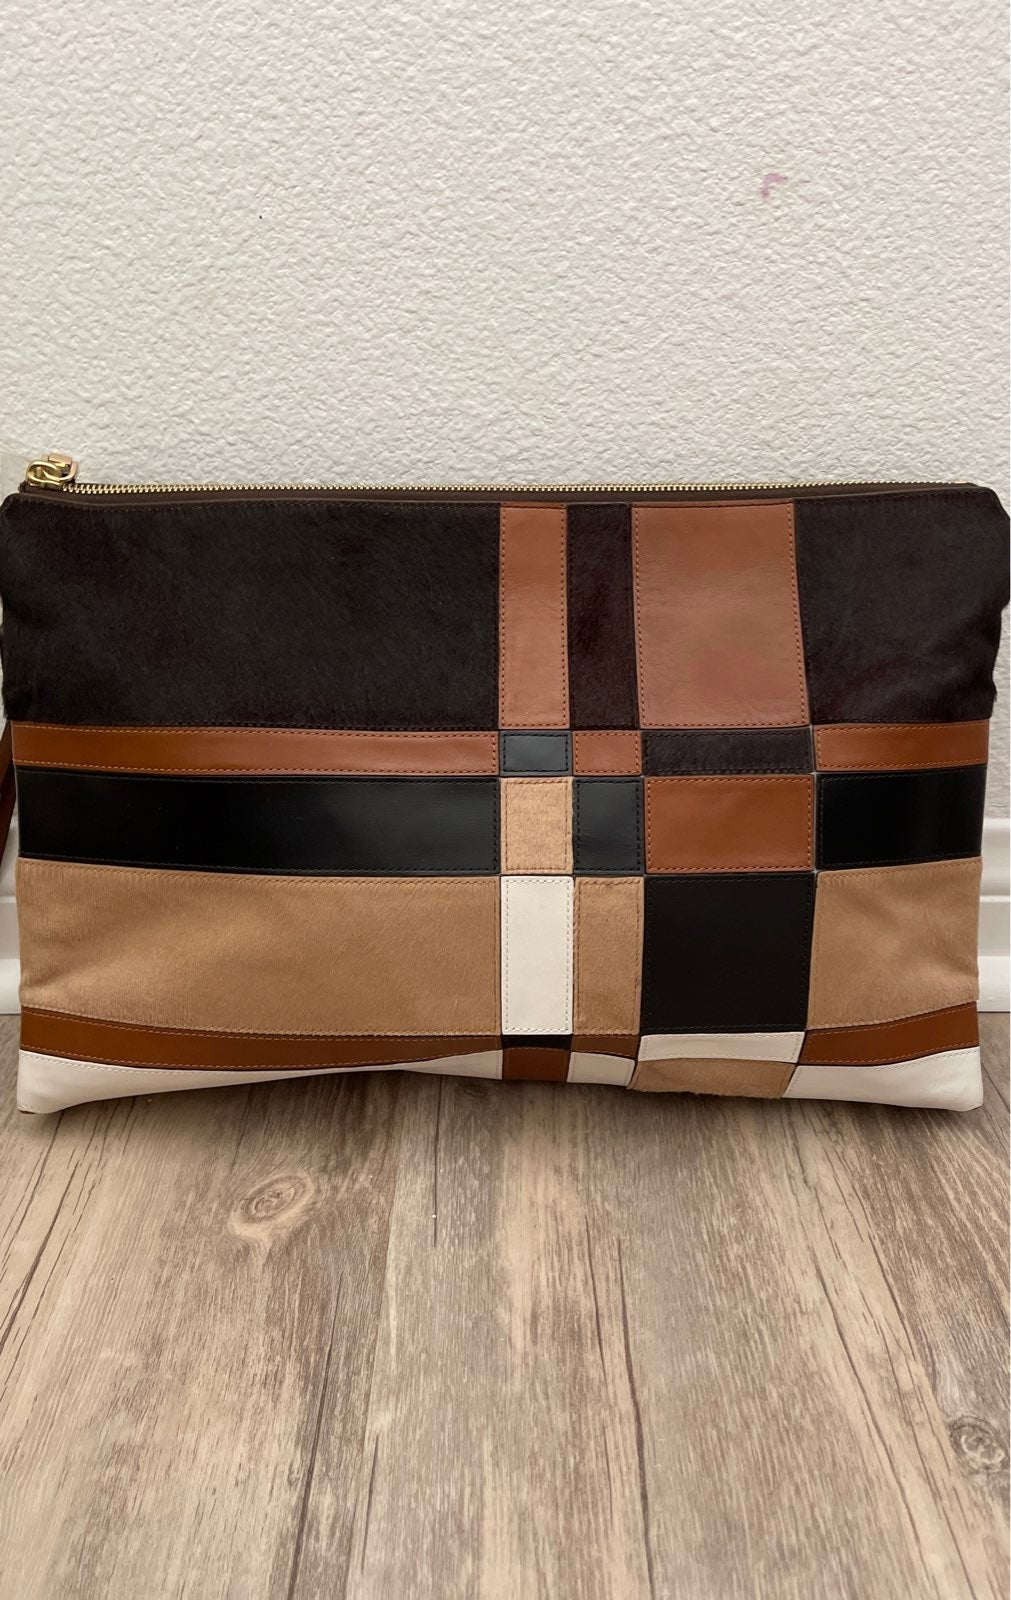 Coach calf skin clutch